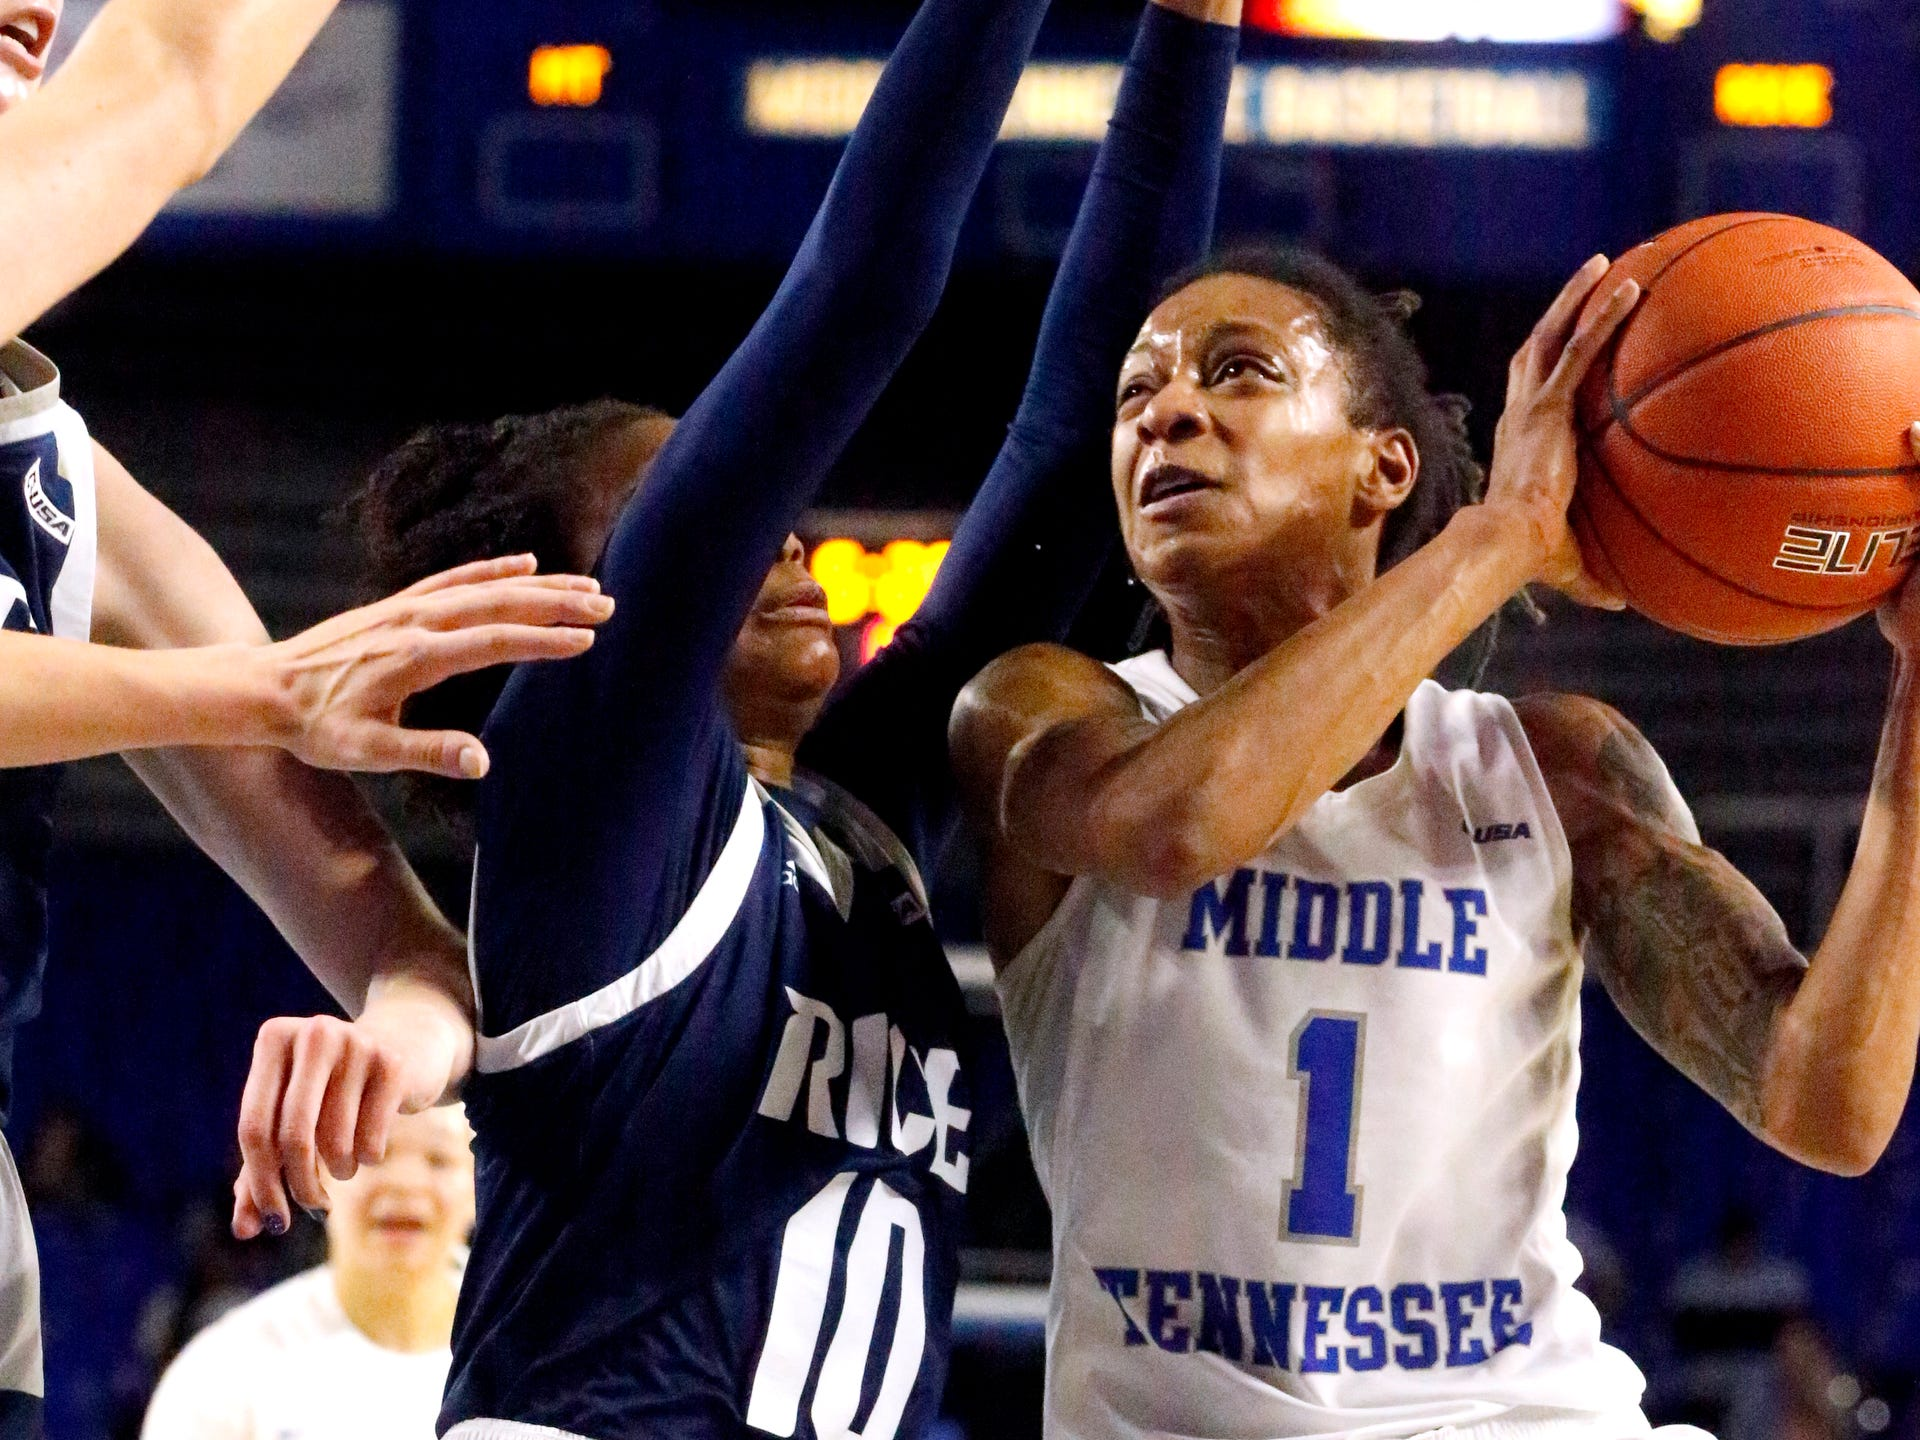 MTSU's guard A'Queen Hayes (1) goes to shoot the ball as Rice's guard Jasmine Smith (10) guards her on Thursday Jan. 24, 2019.